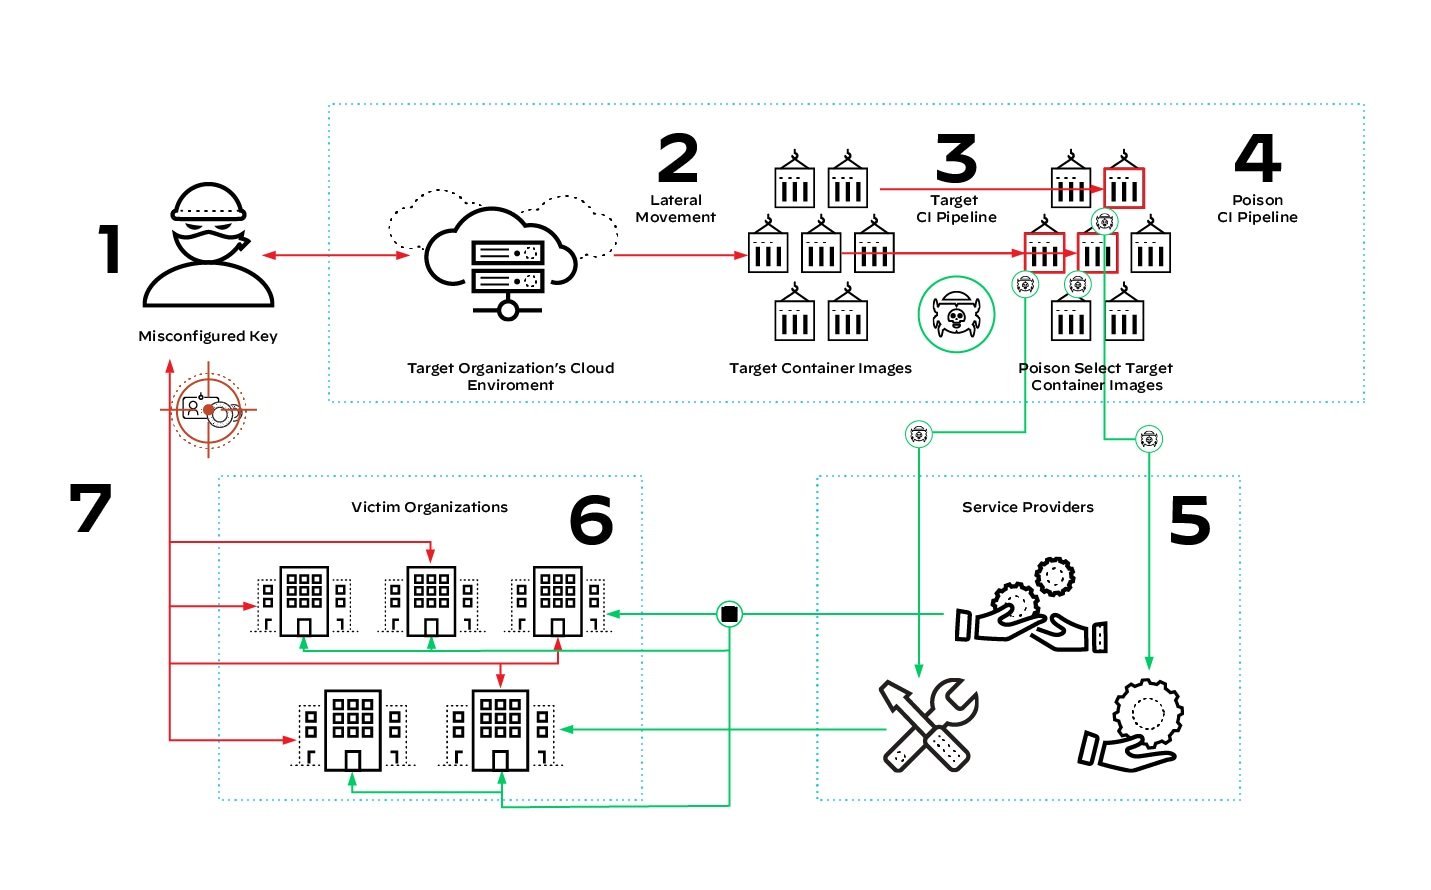 An exponential growth model for how attackers can start by compromising one SaaS vendor and compromise many organizations as a result. 1) Misconfigured Key, 2) Lateral movement, 3) Target CI/CD pipeline, 4) Poison CI pipeline, 5) Service providers, 6) victim organizations, 7) repeat.